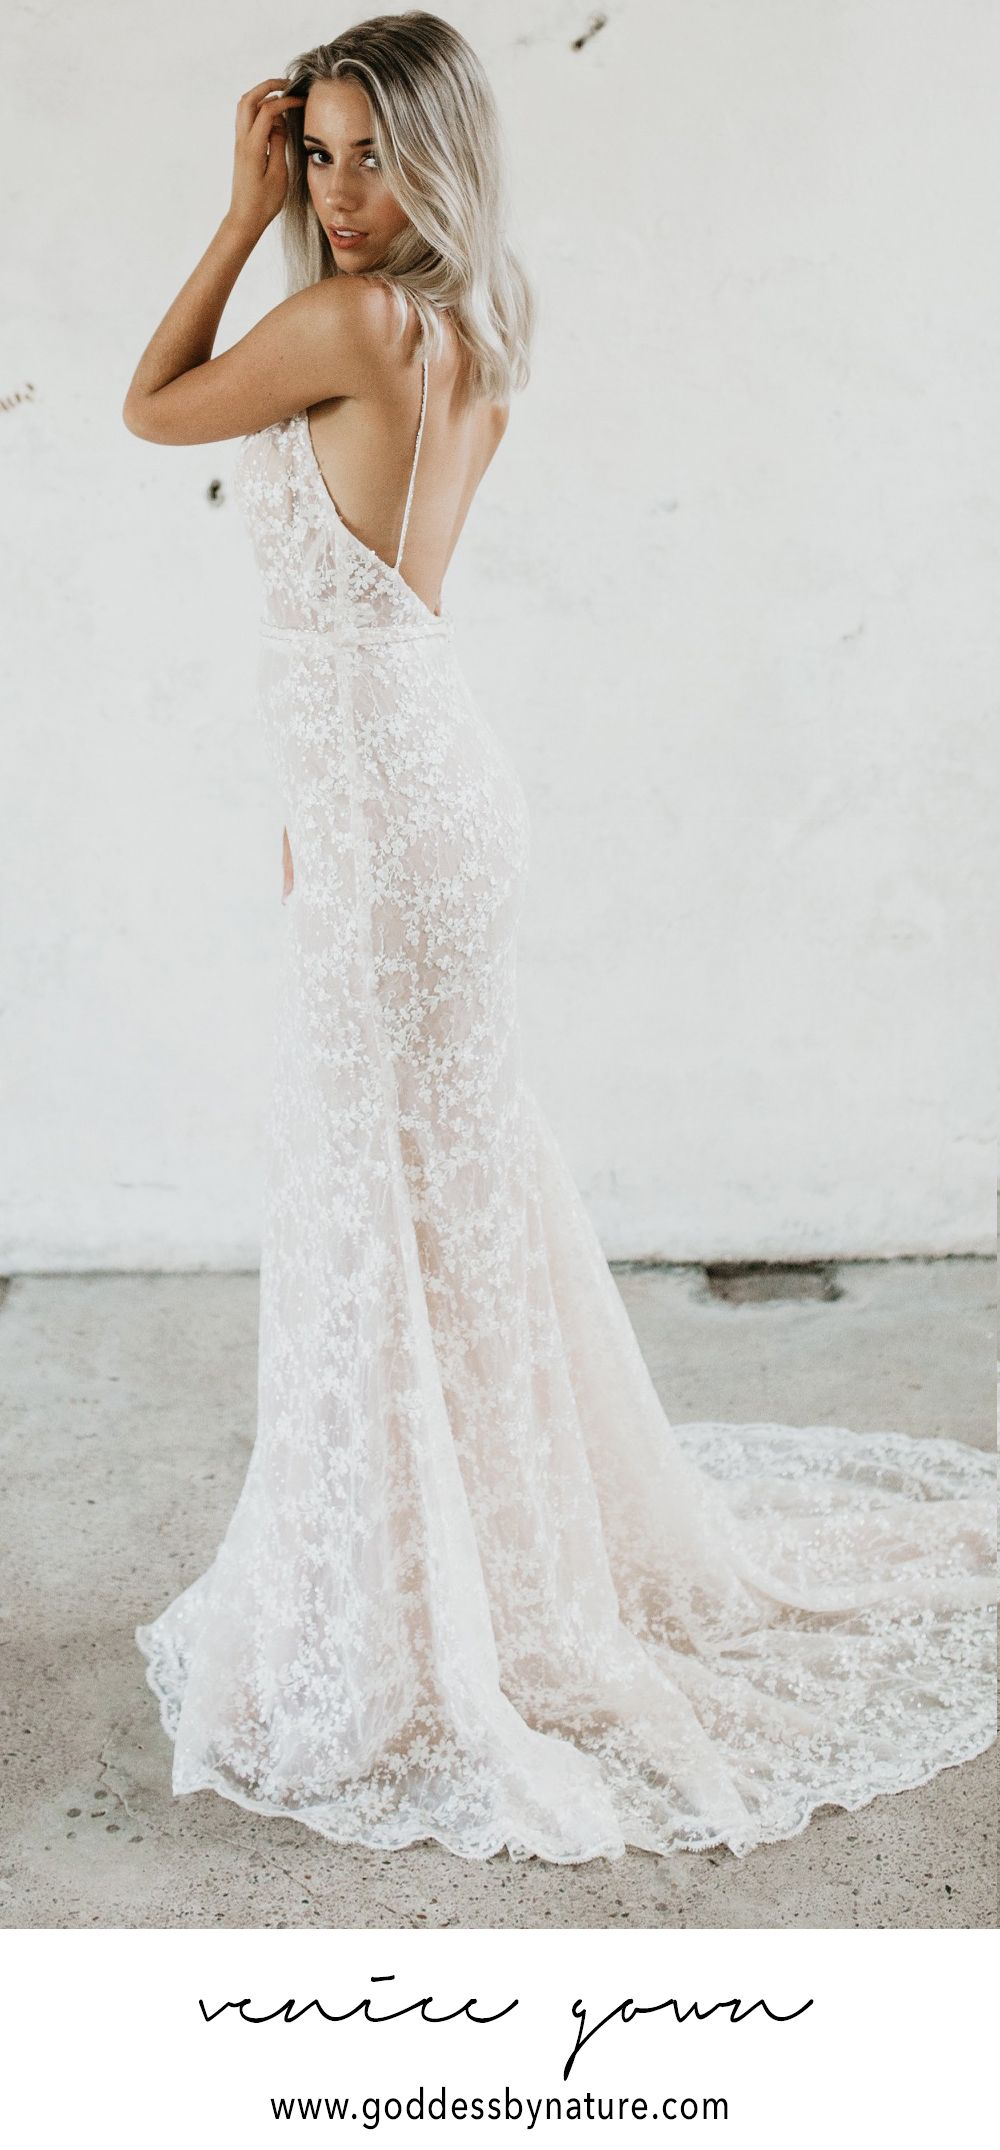 Venice gown from the  Goddess By Nature Timeless Classic